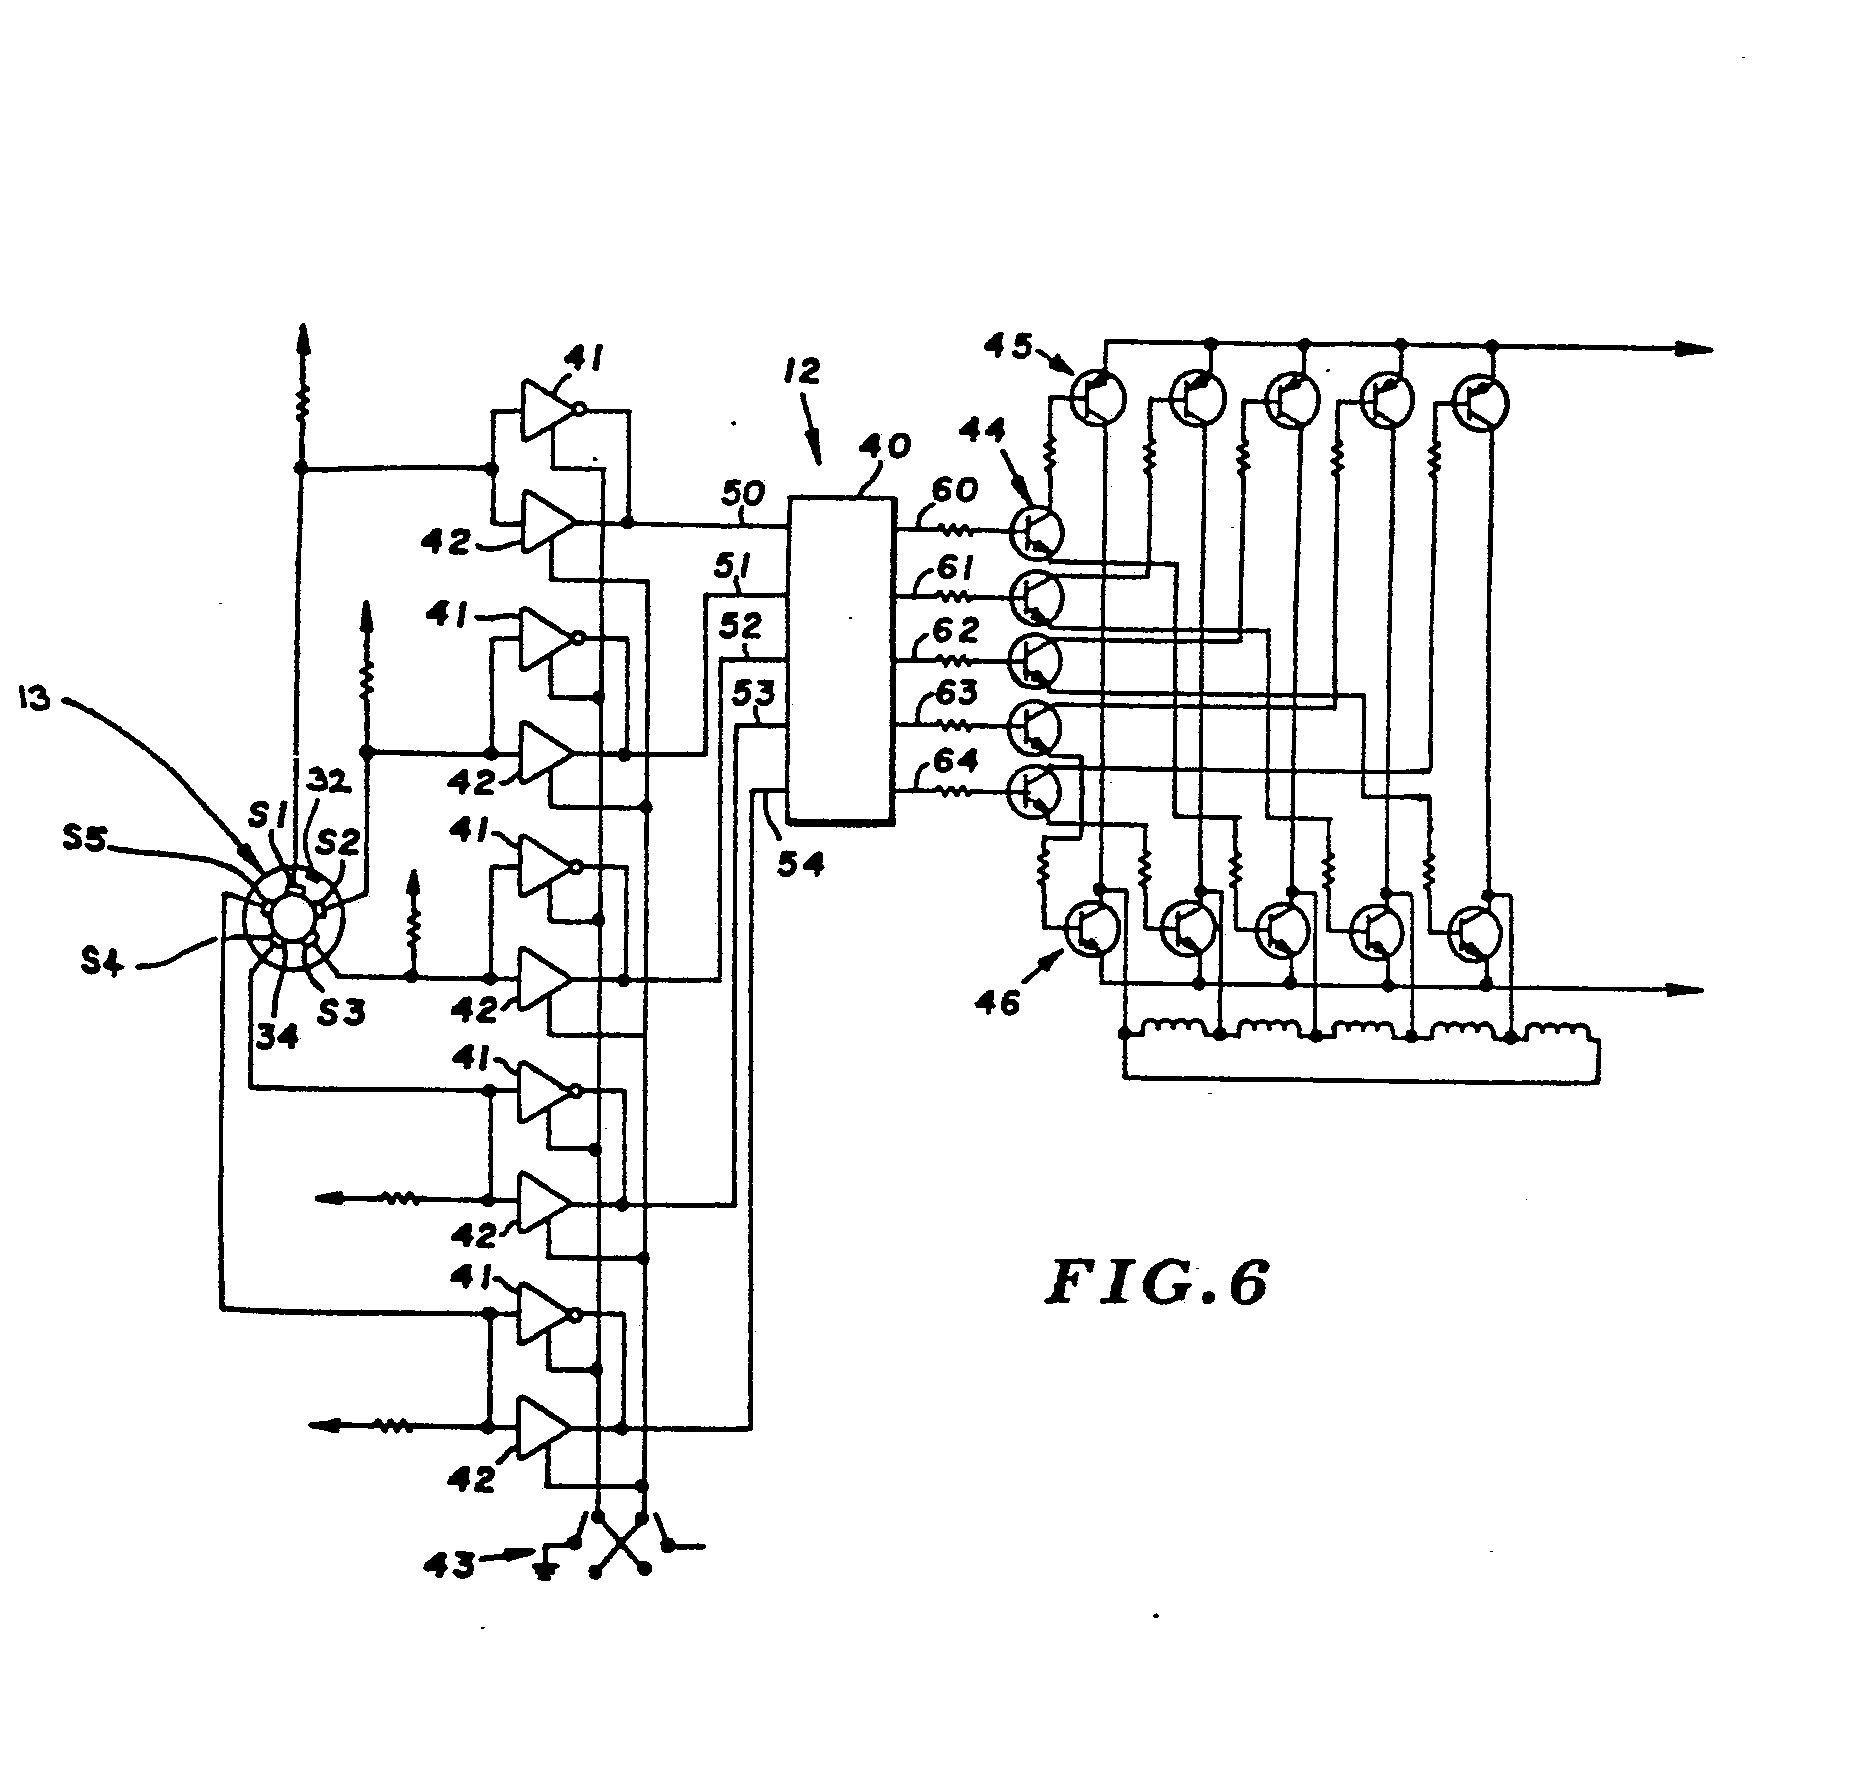 Brushless Dc Motor And Control Circuit Therefor Patent 0032441 Shows About Twotransistor Driver Diagram